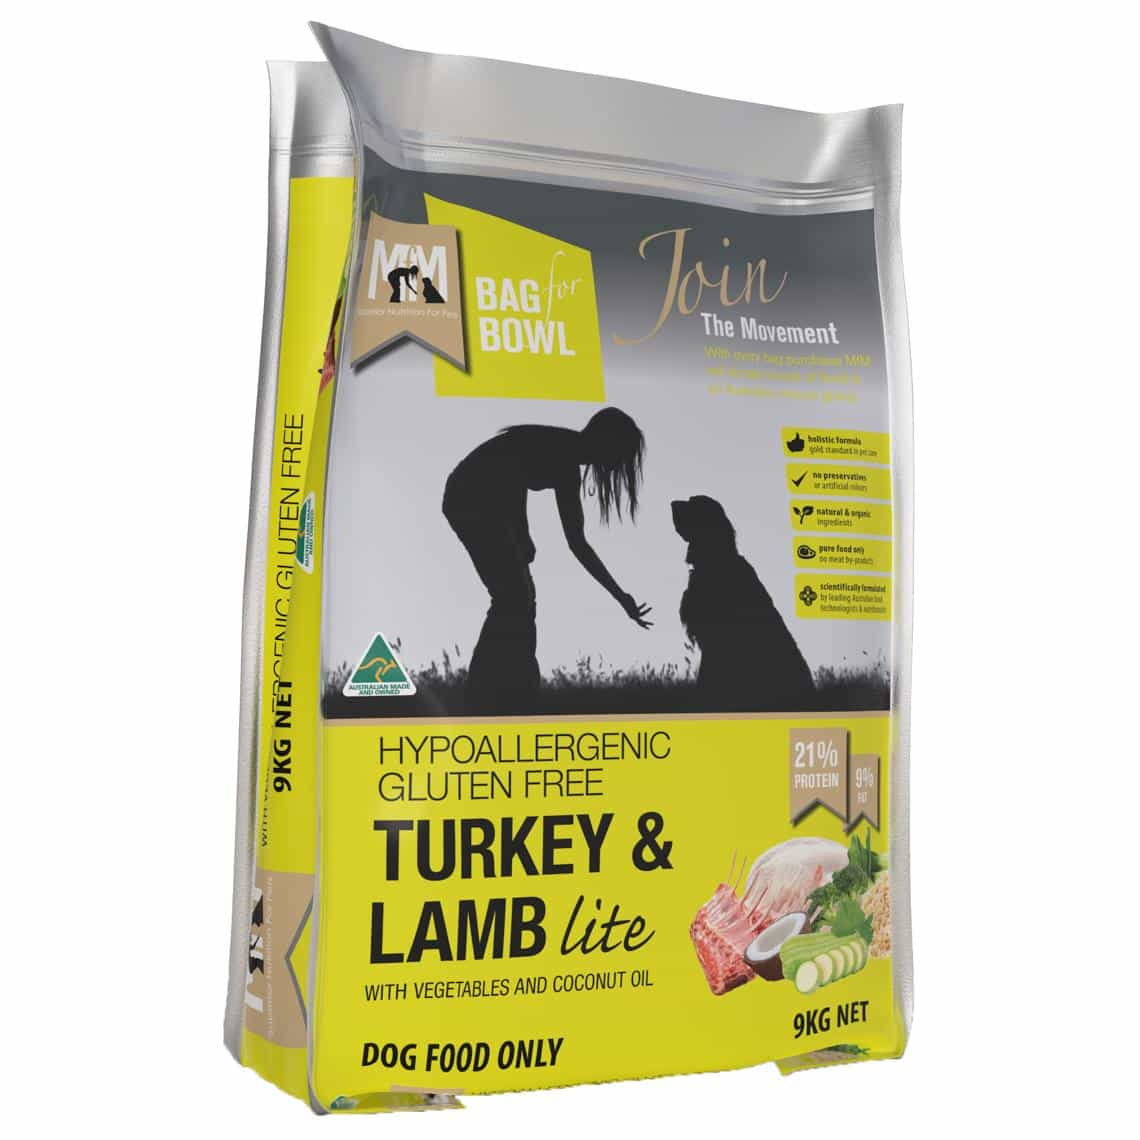 Meals For Mutts Turkey & Lamb Lite Dog Food